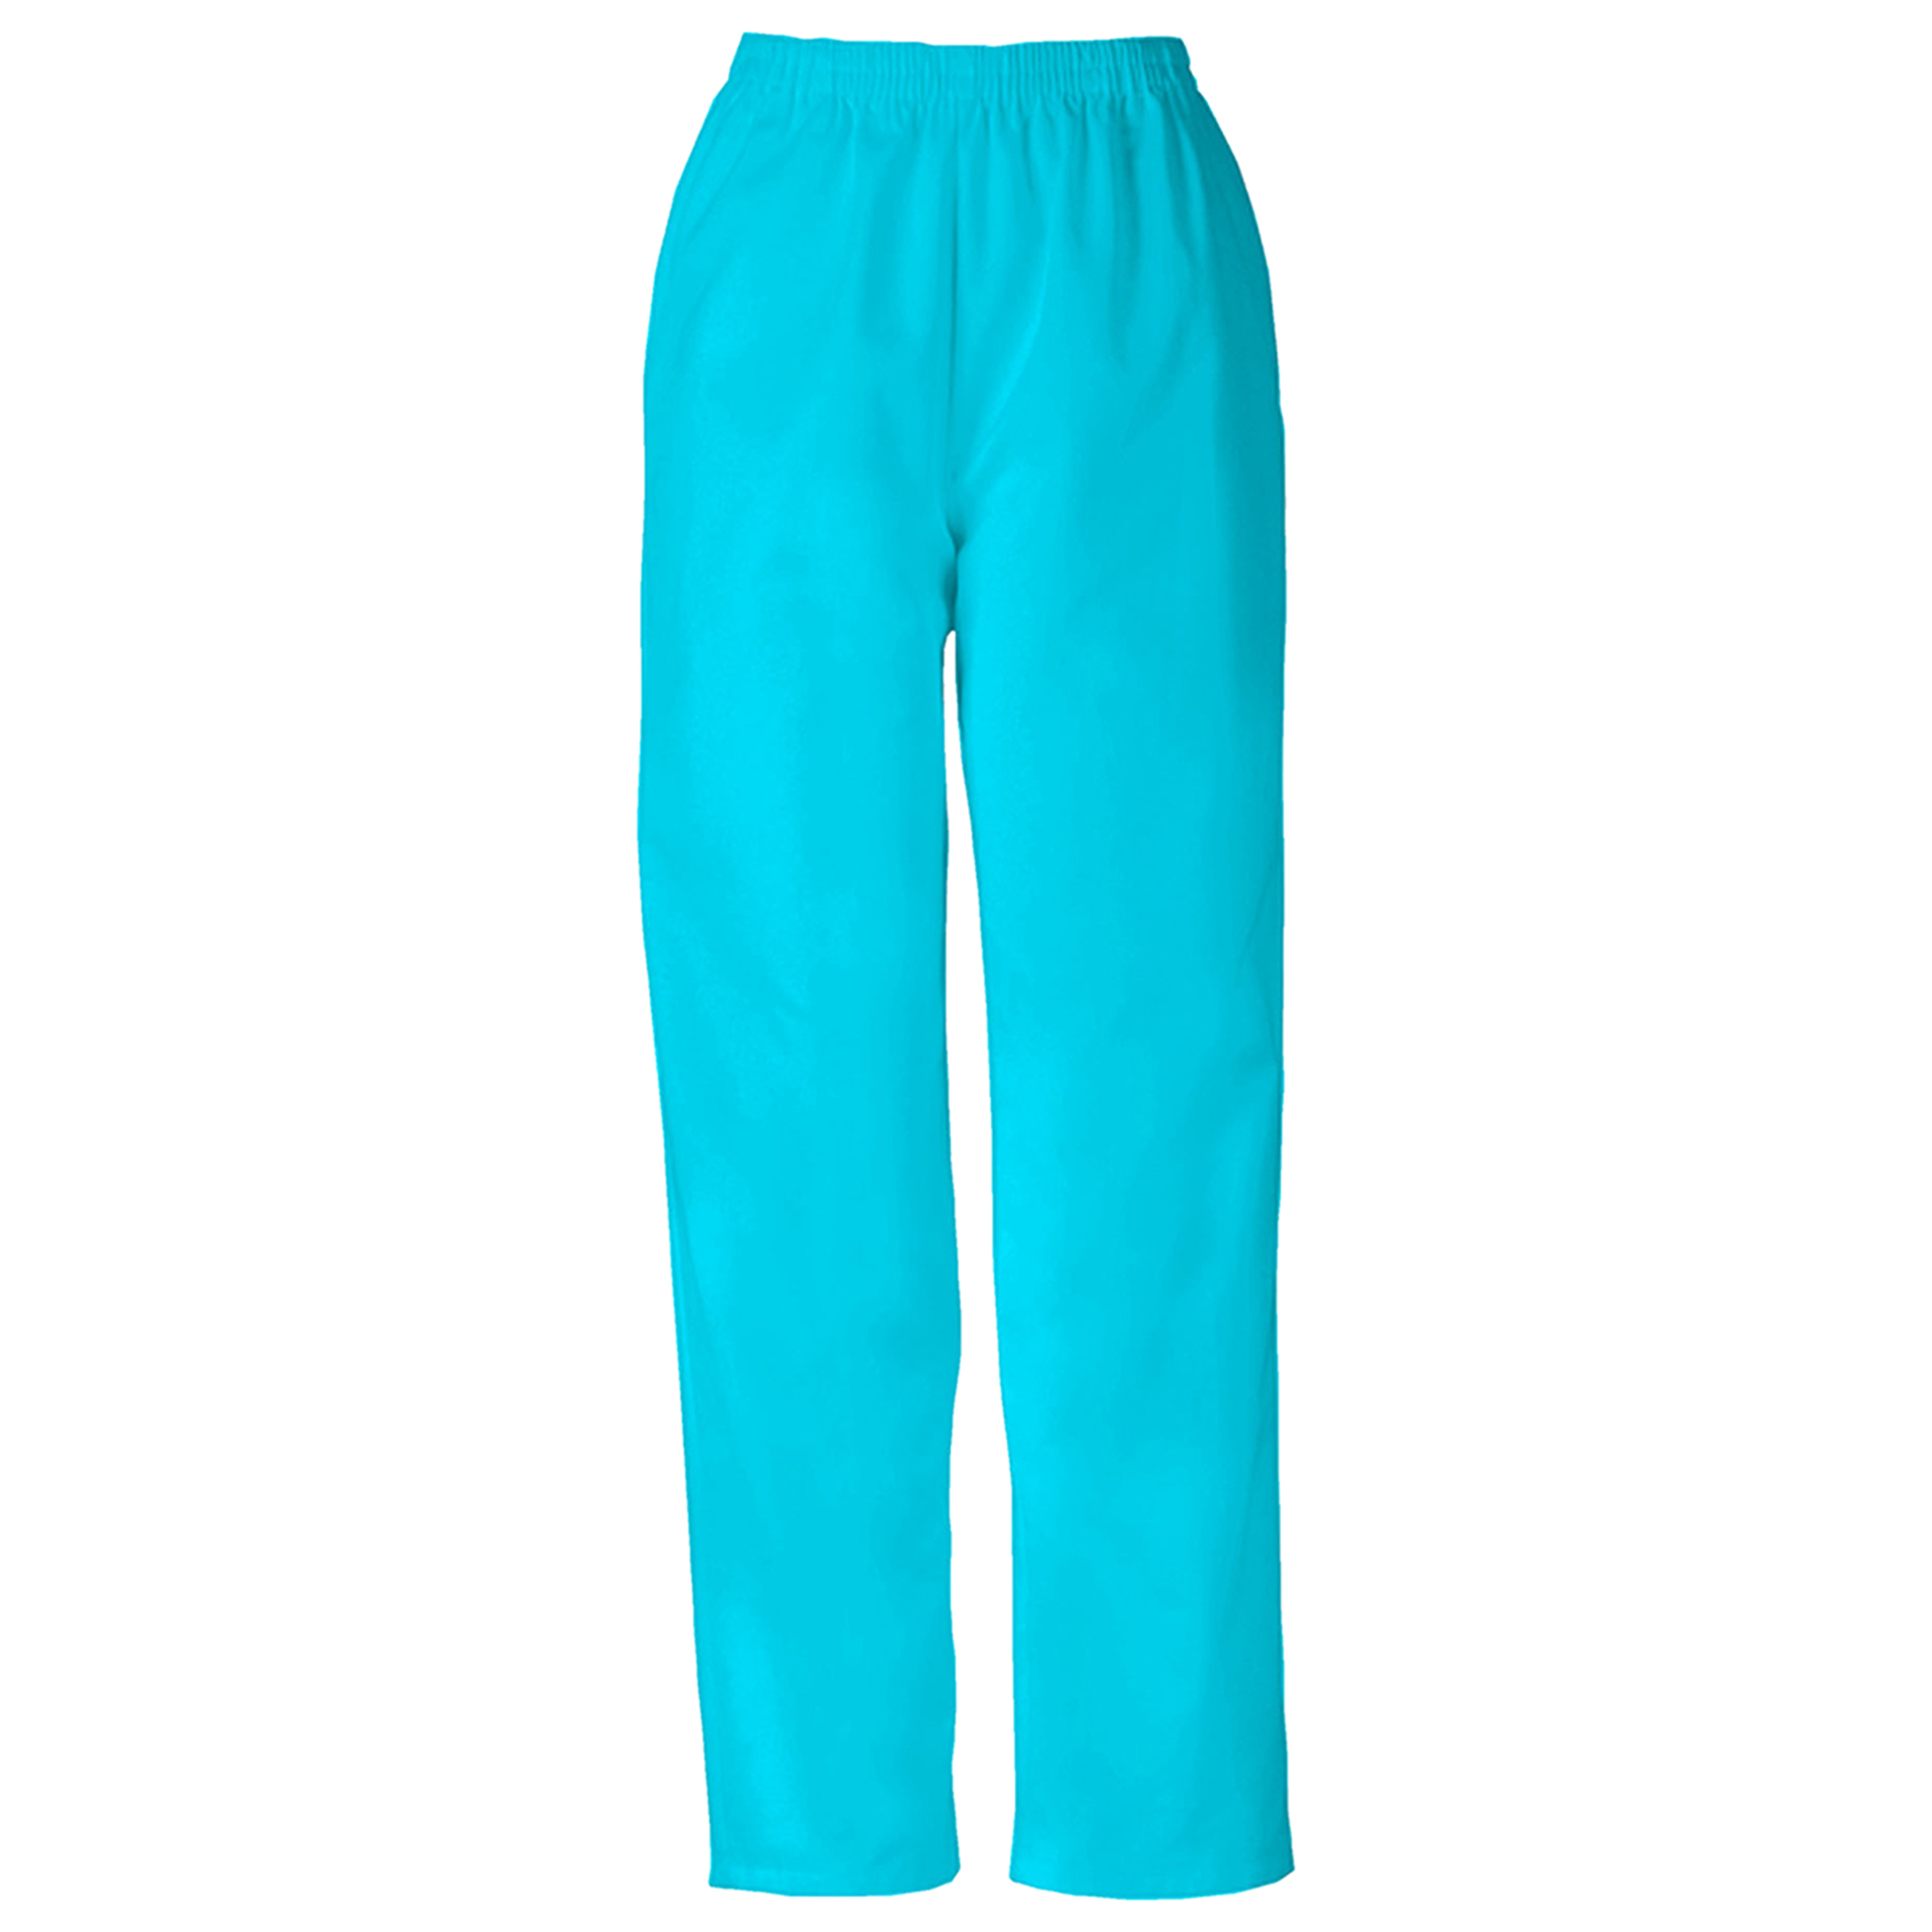 SpiConnect Women's Natural Rise Tapered Leg Pull-On Pant